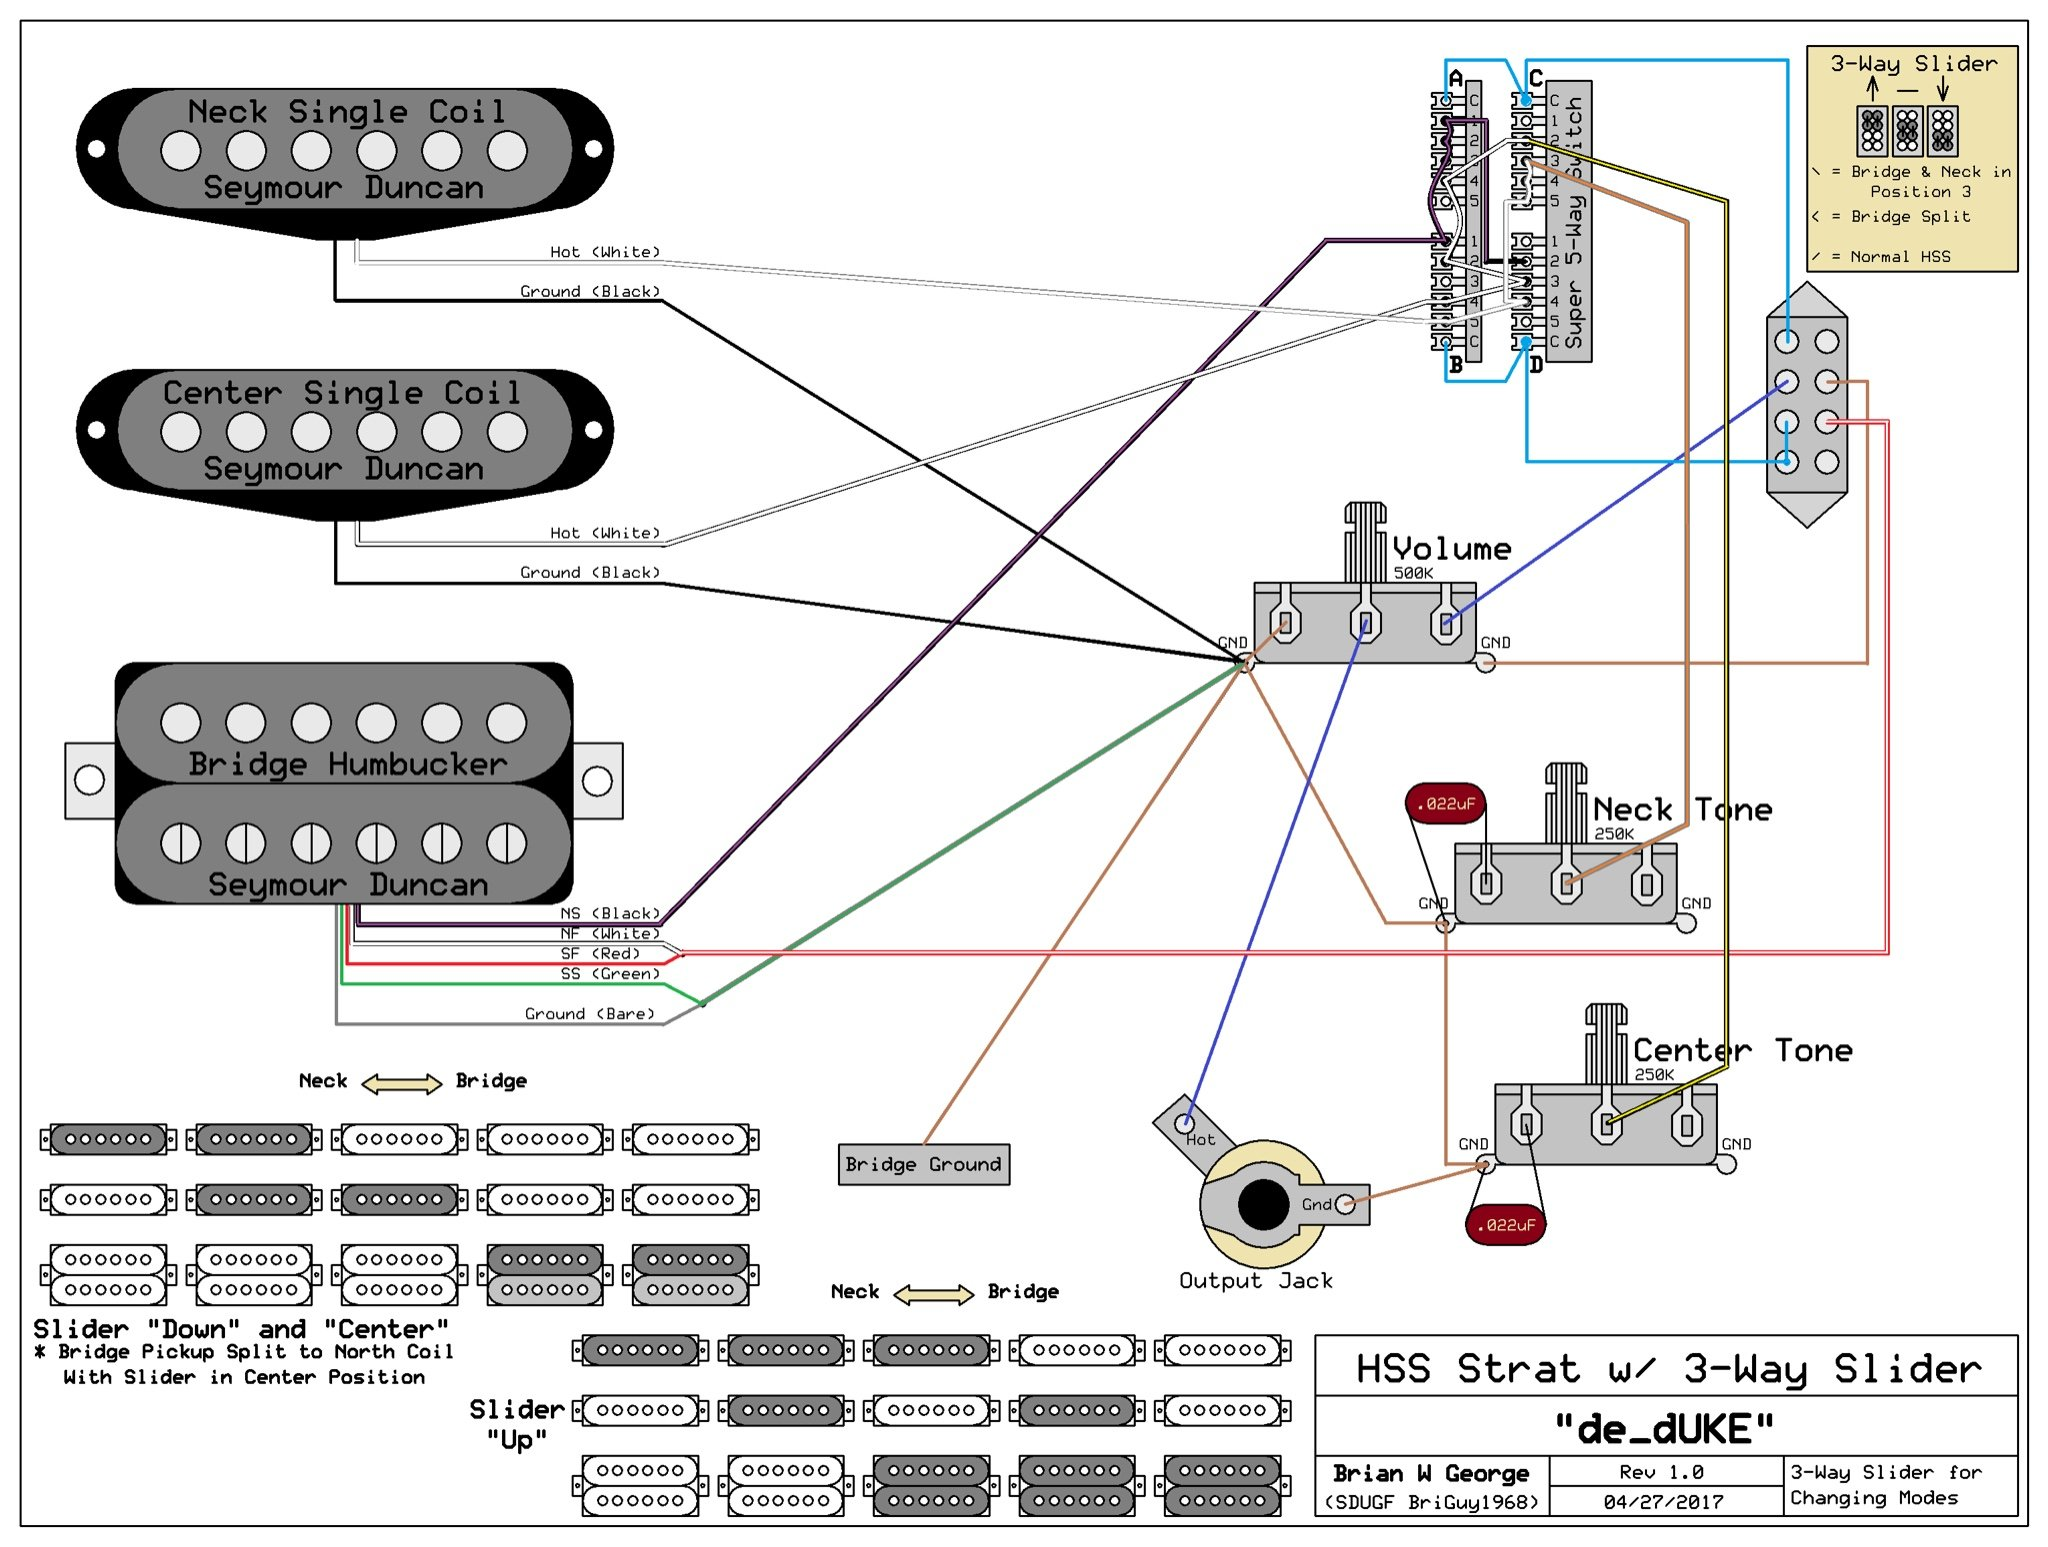 5 Way Switch Wiring Hss - Schematic Diagram  Way Switch Wiring Diagram For Squier on 4-way light circuit diagram, 3 way switch diagram, 5-way import switch diagram, 6-way light switch diagram, 5 way light diagram, two way switch diagram, 3 humbuckers with 5 way switching diagram, 4-way switch diagram,